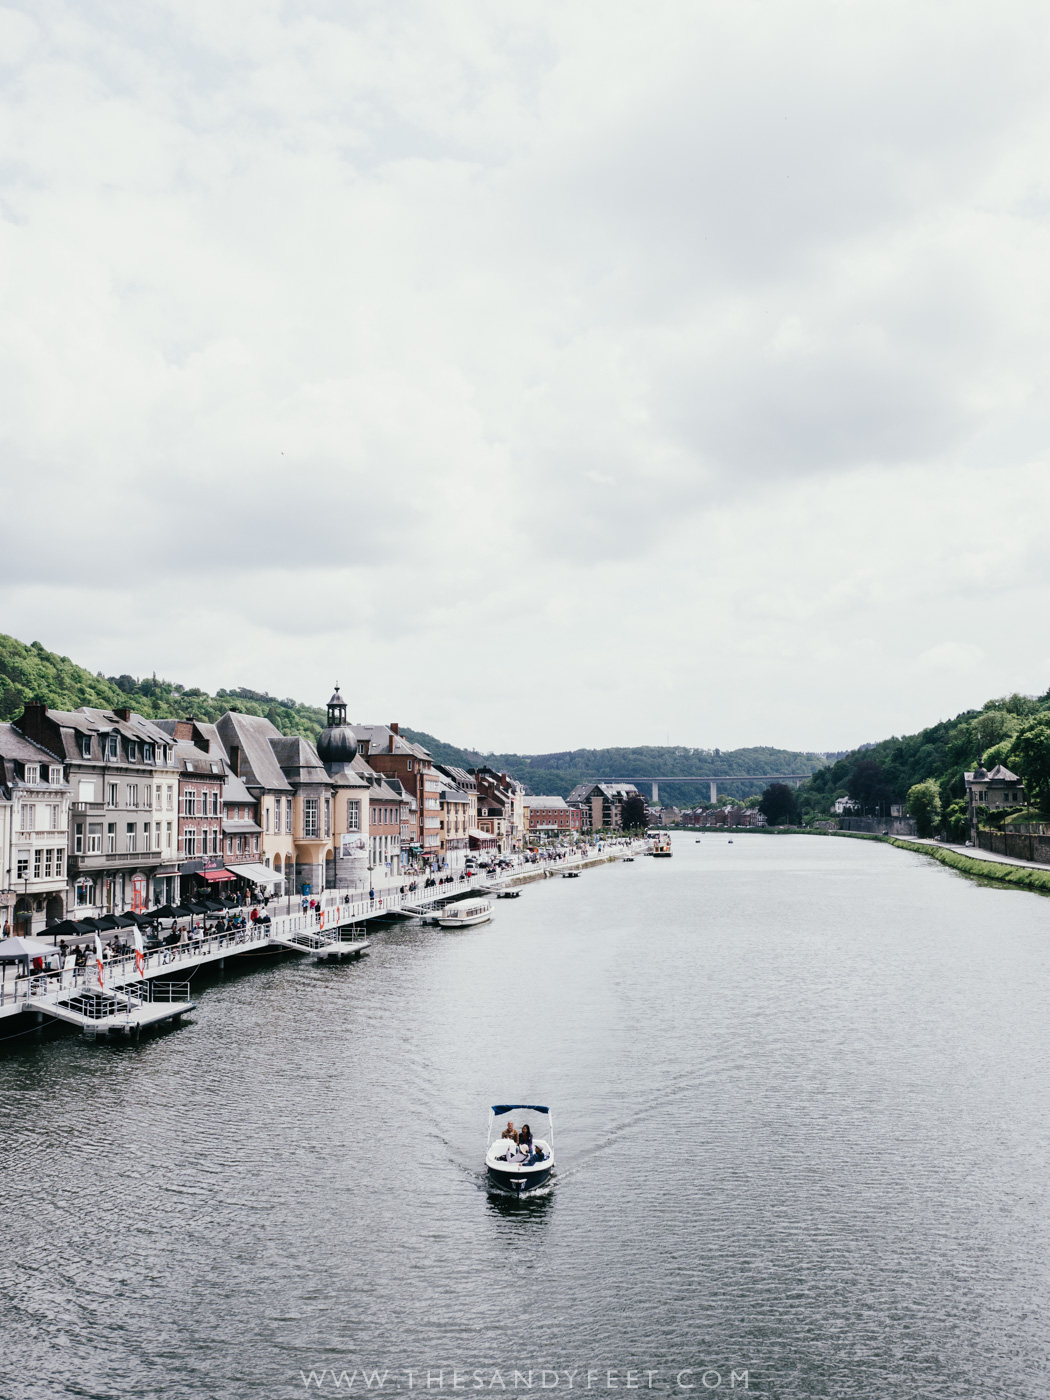 Visit the riverside town of Dinant | A perfect weekend itinerary in the Namur region and one of the best things to do in Namur and Belgium's Wallonia Region.